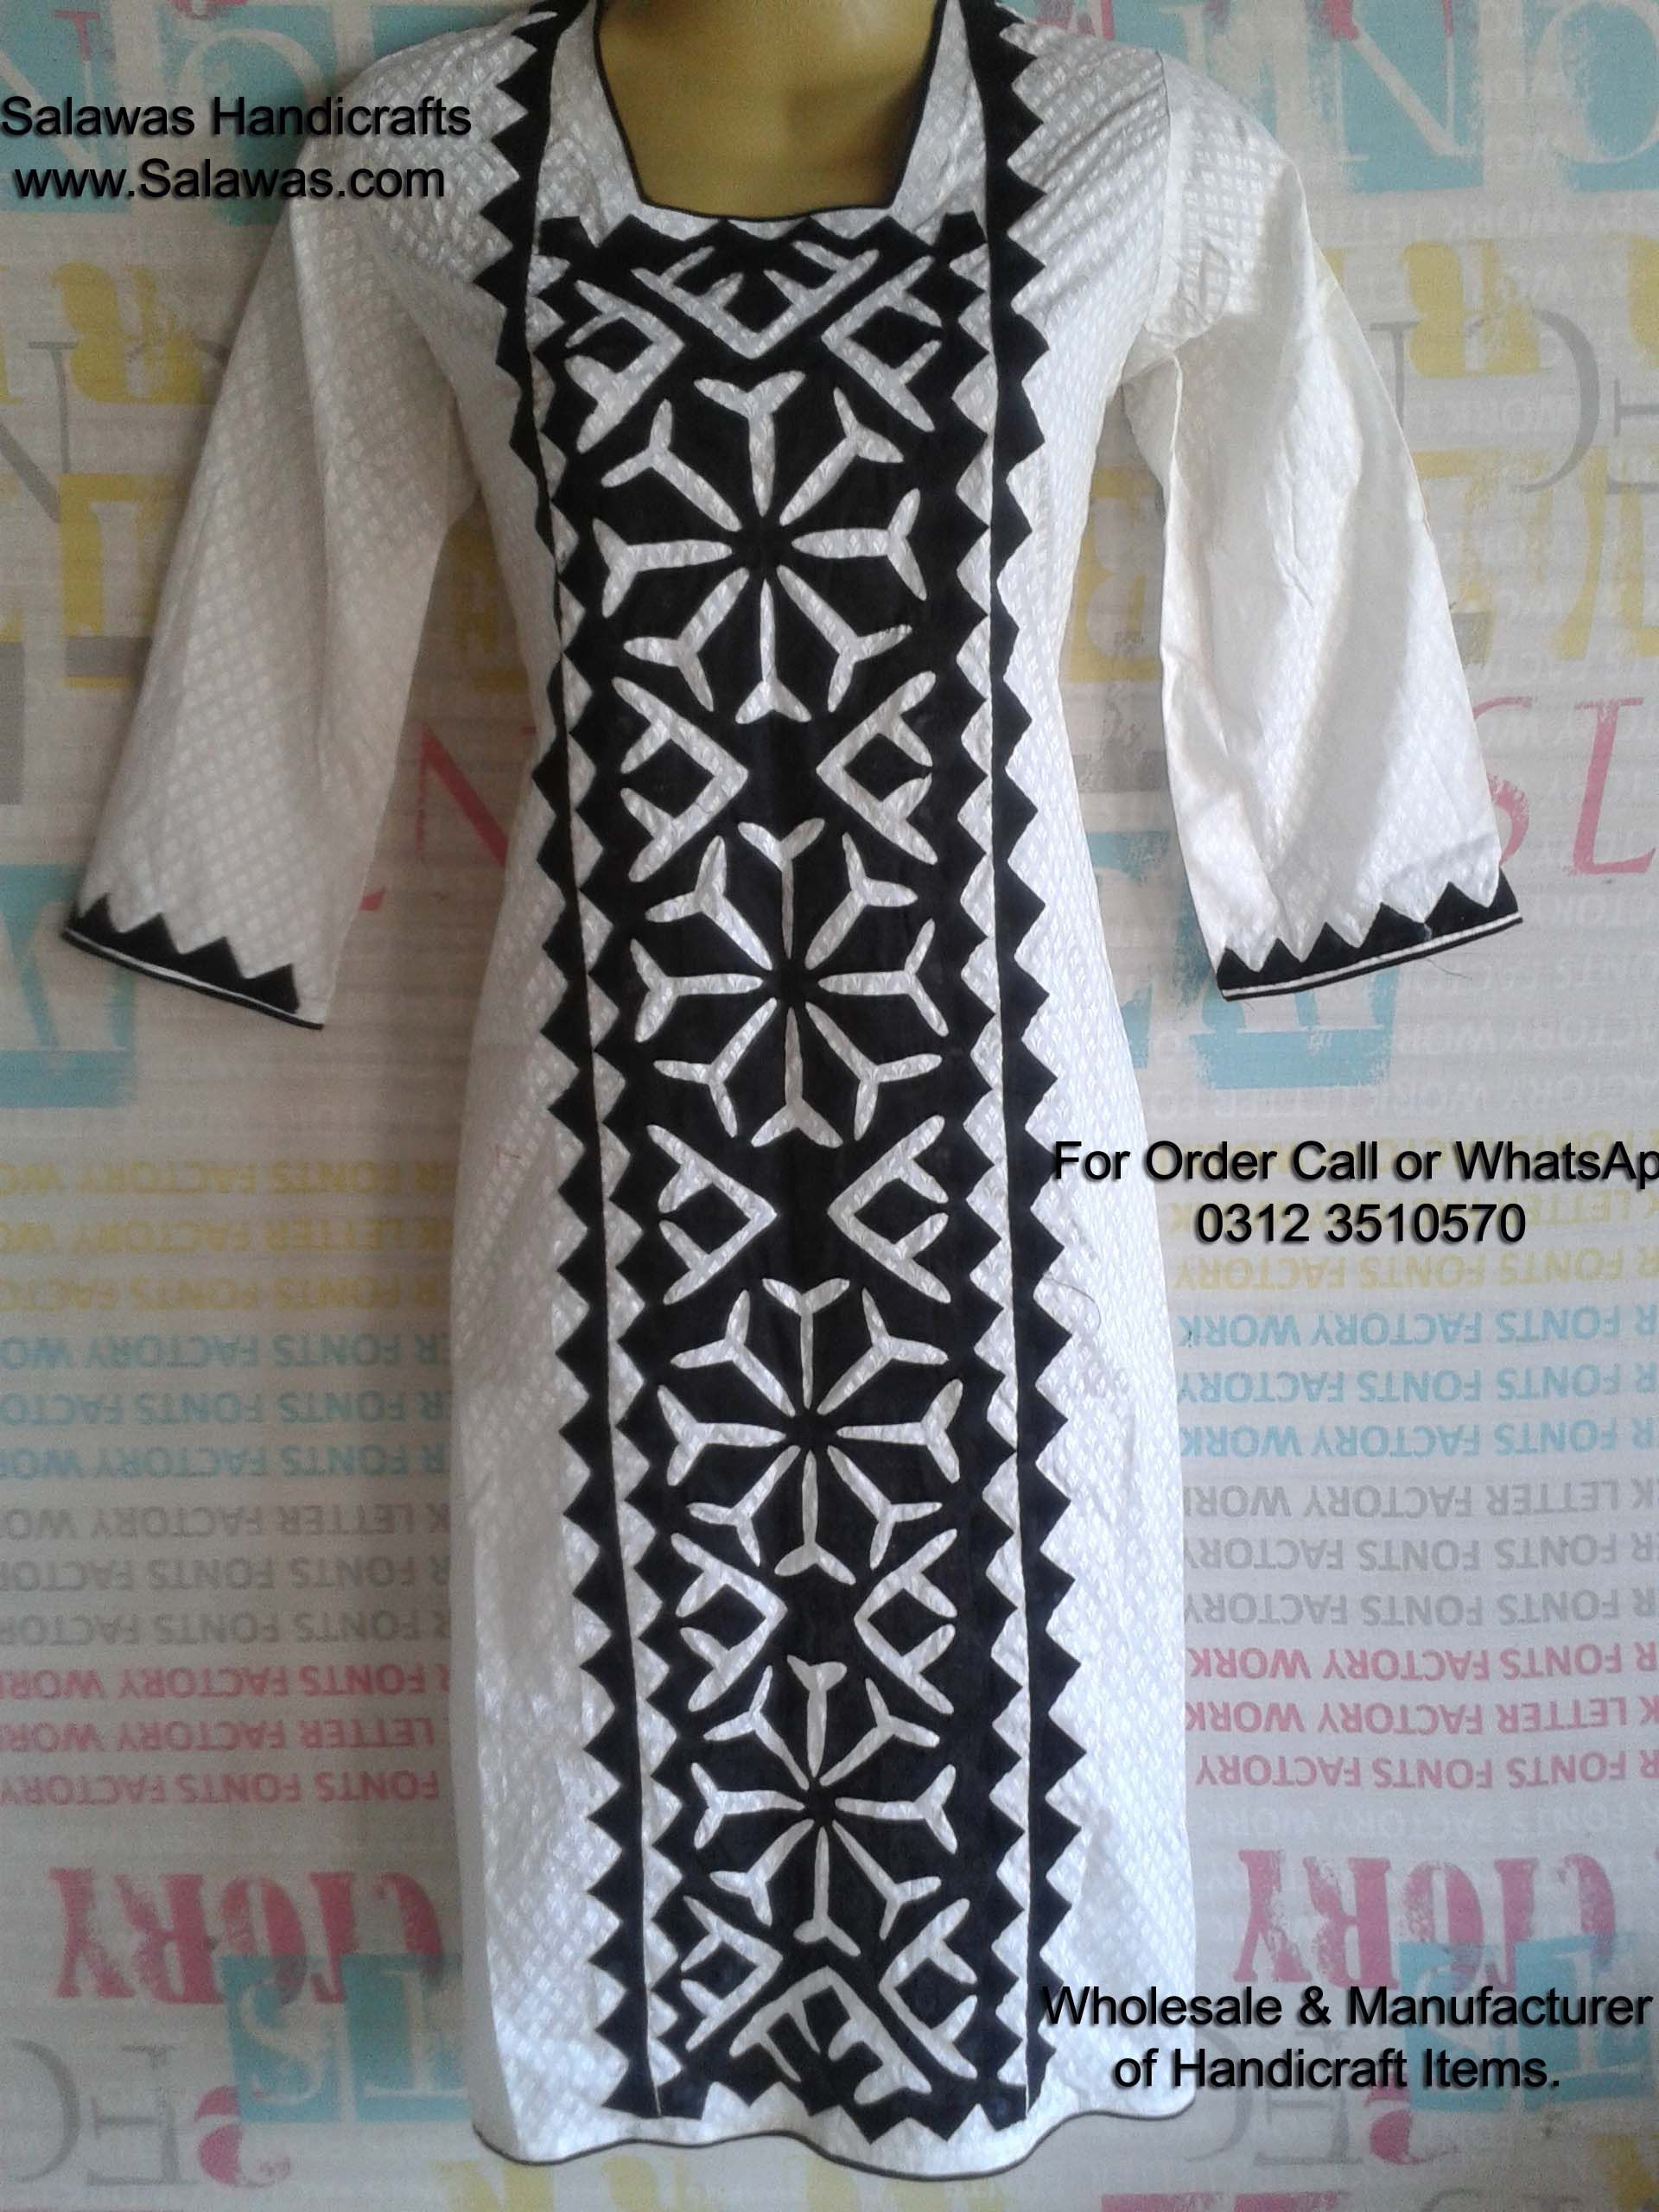 This Is Simple And Unique Aplic Kameez Shalwar Dress From Pakistan